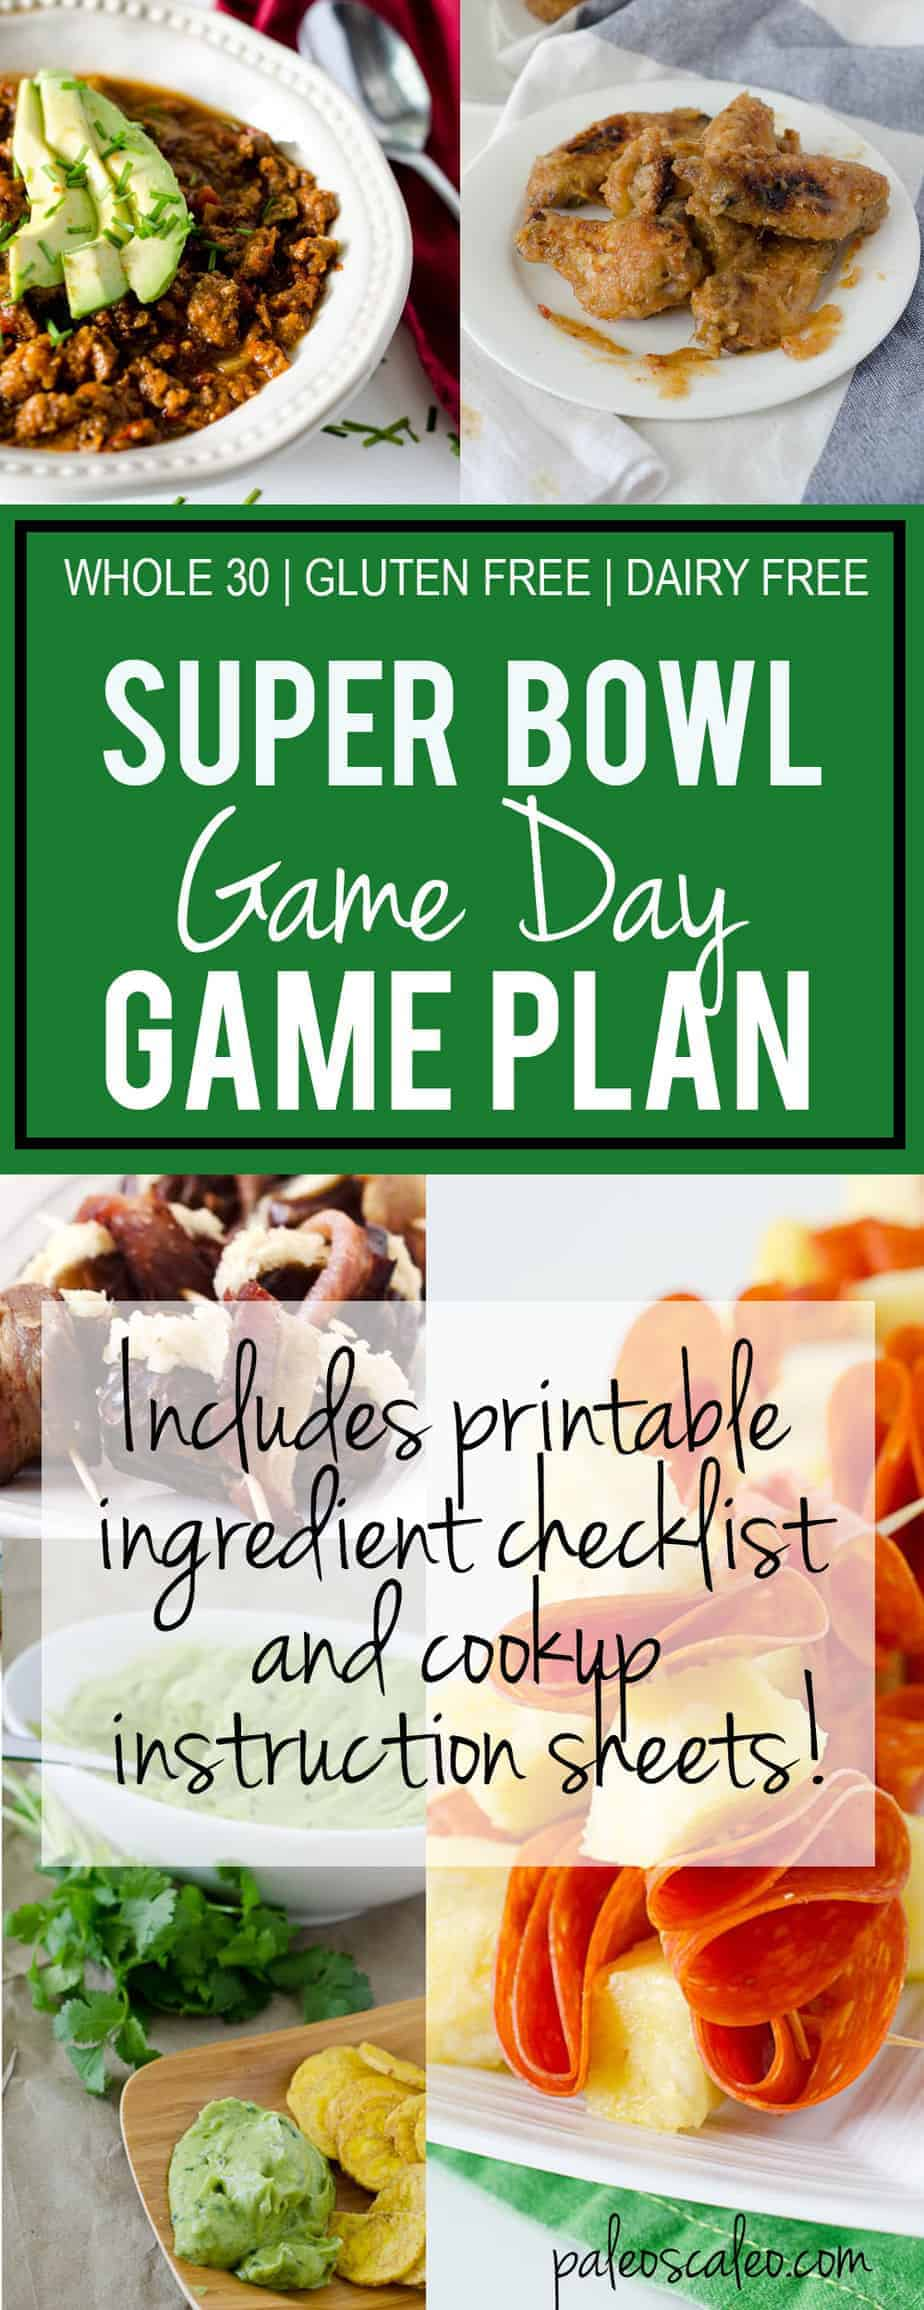 Super Bowl Game Day Game Plan | PaleoScaleo.com